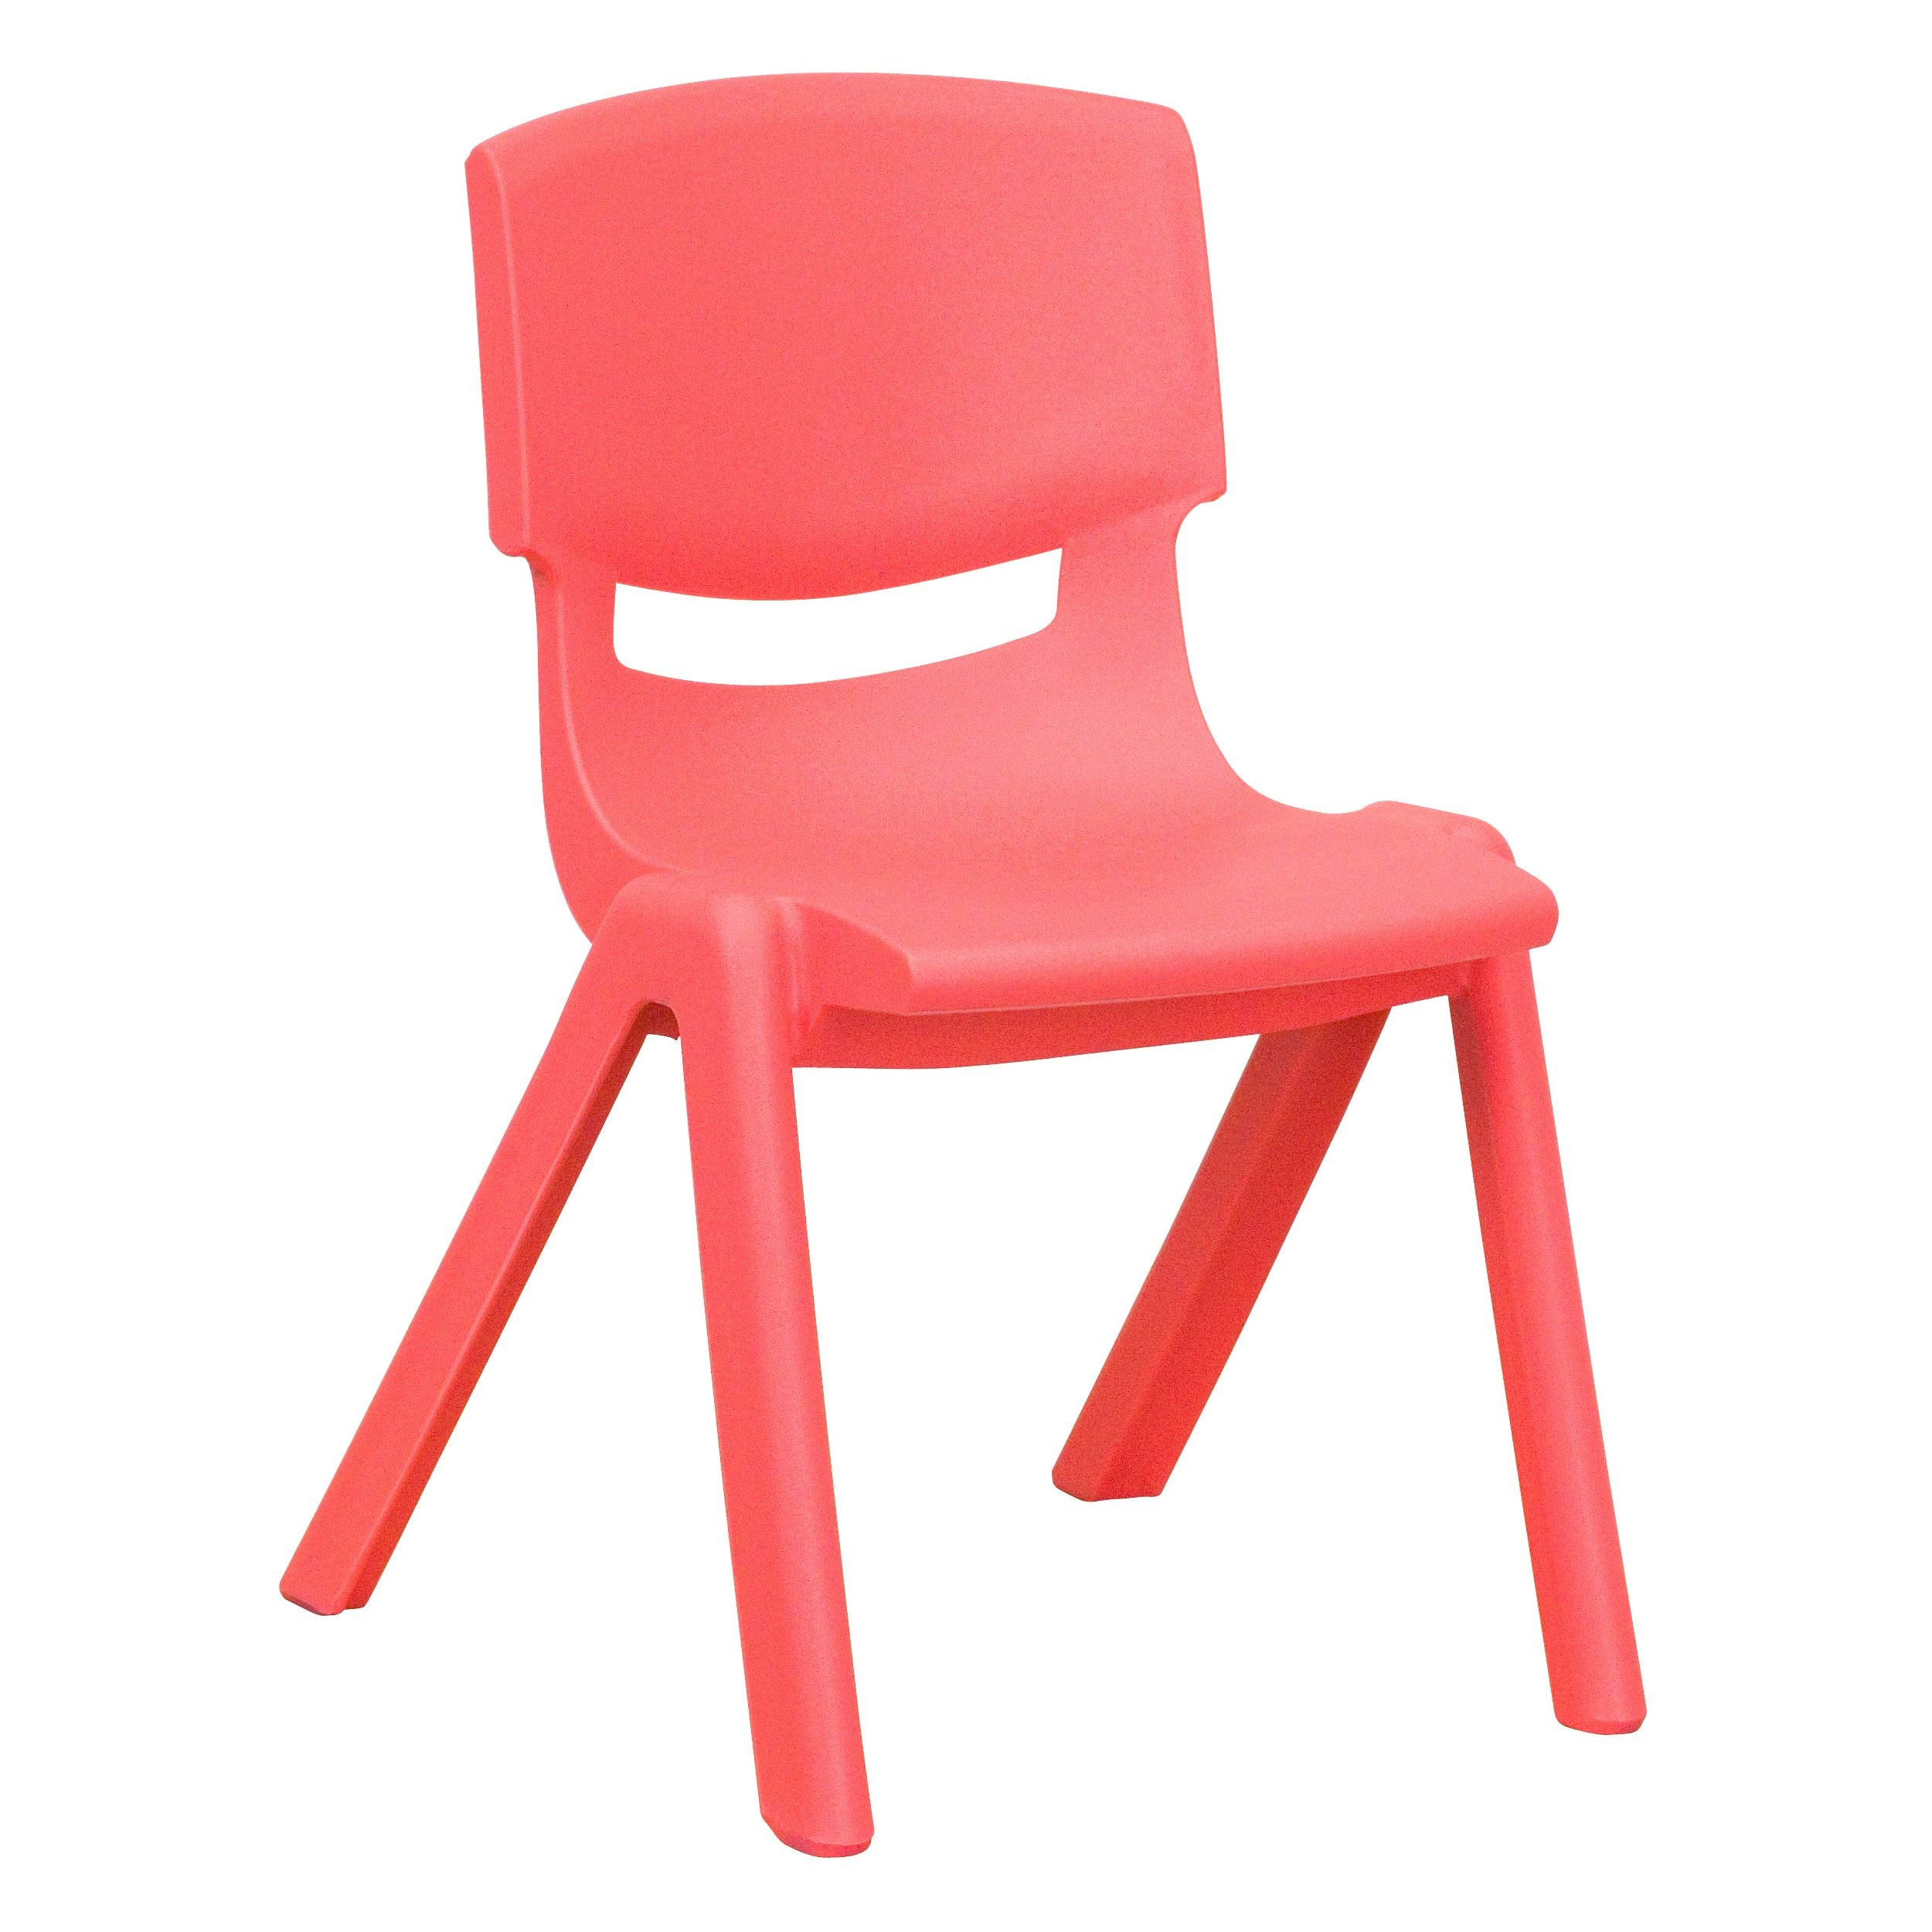 Flash Furniture YUYCX001REDGG Red Plastic Stackable